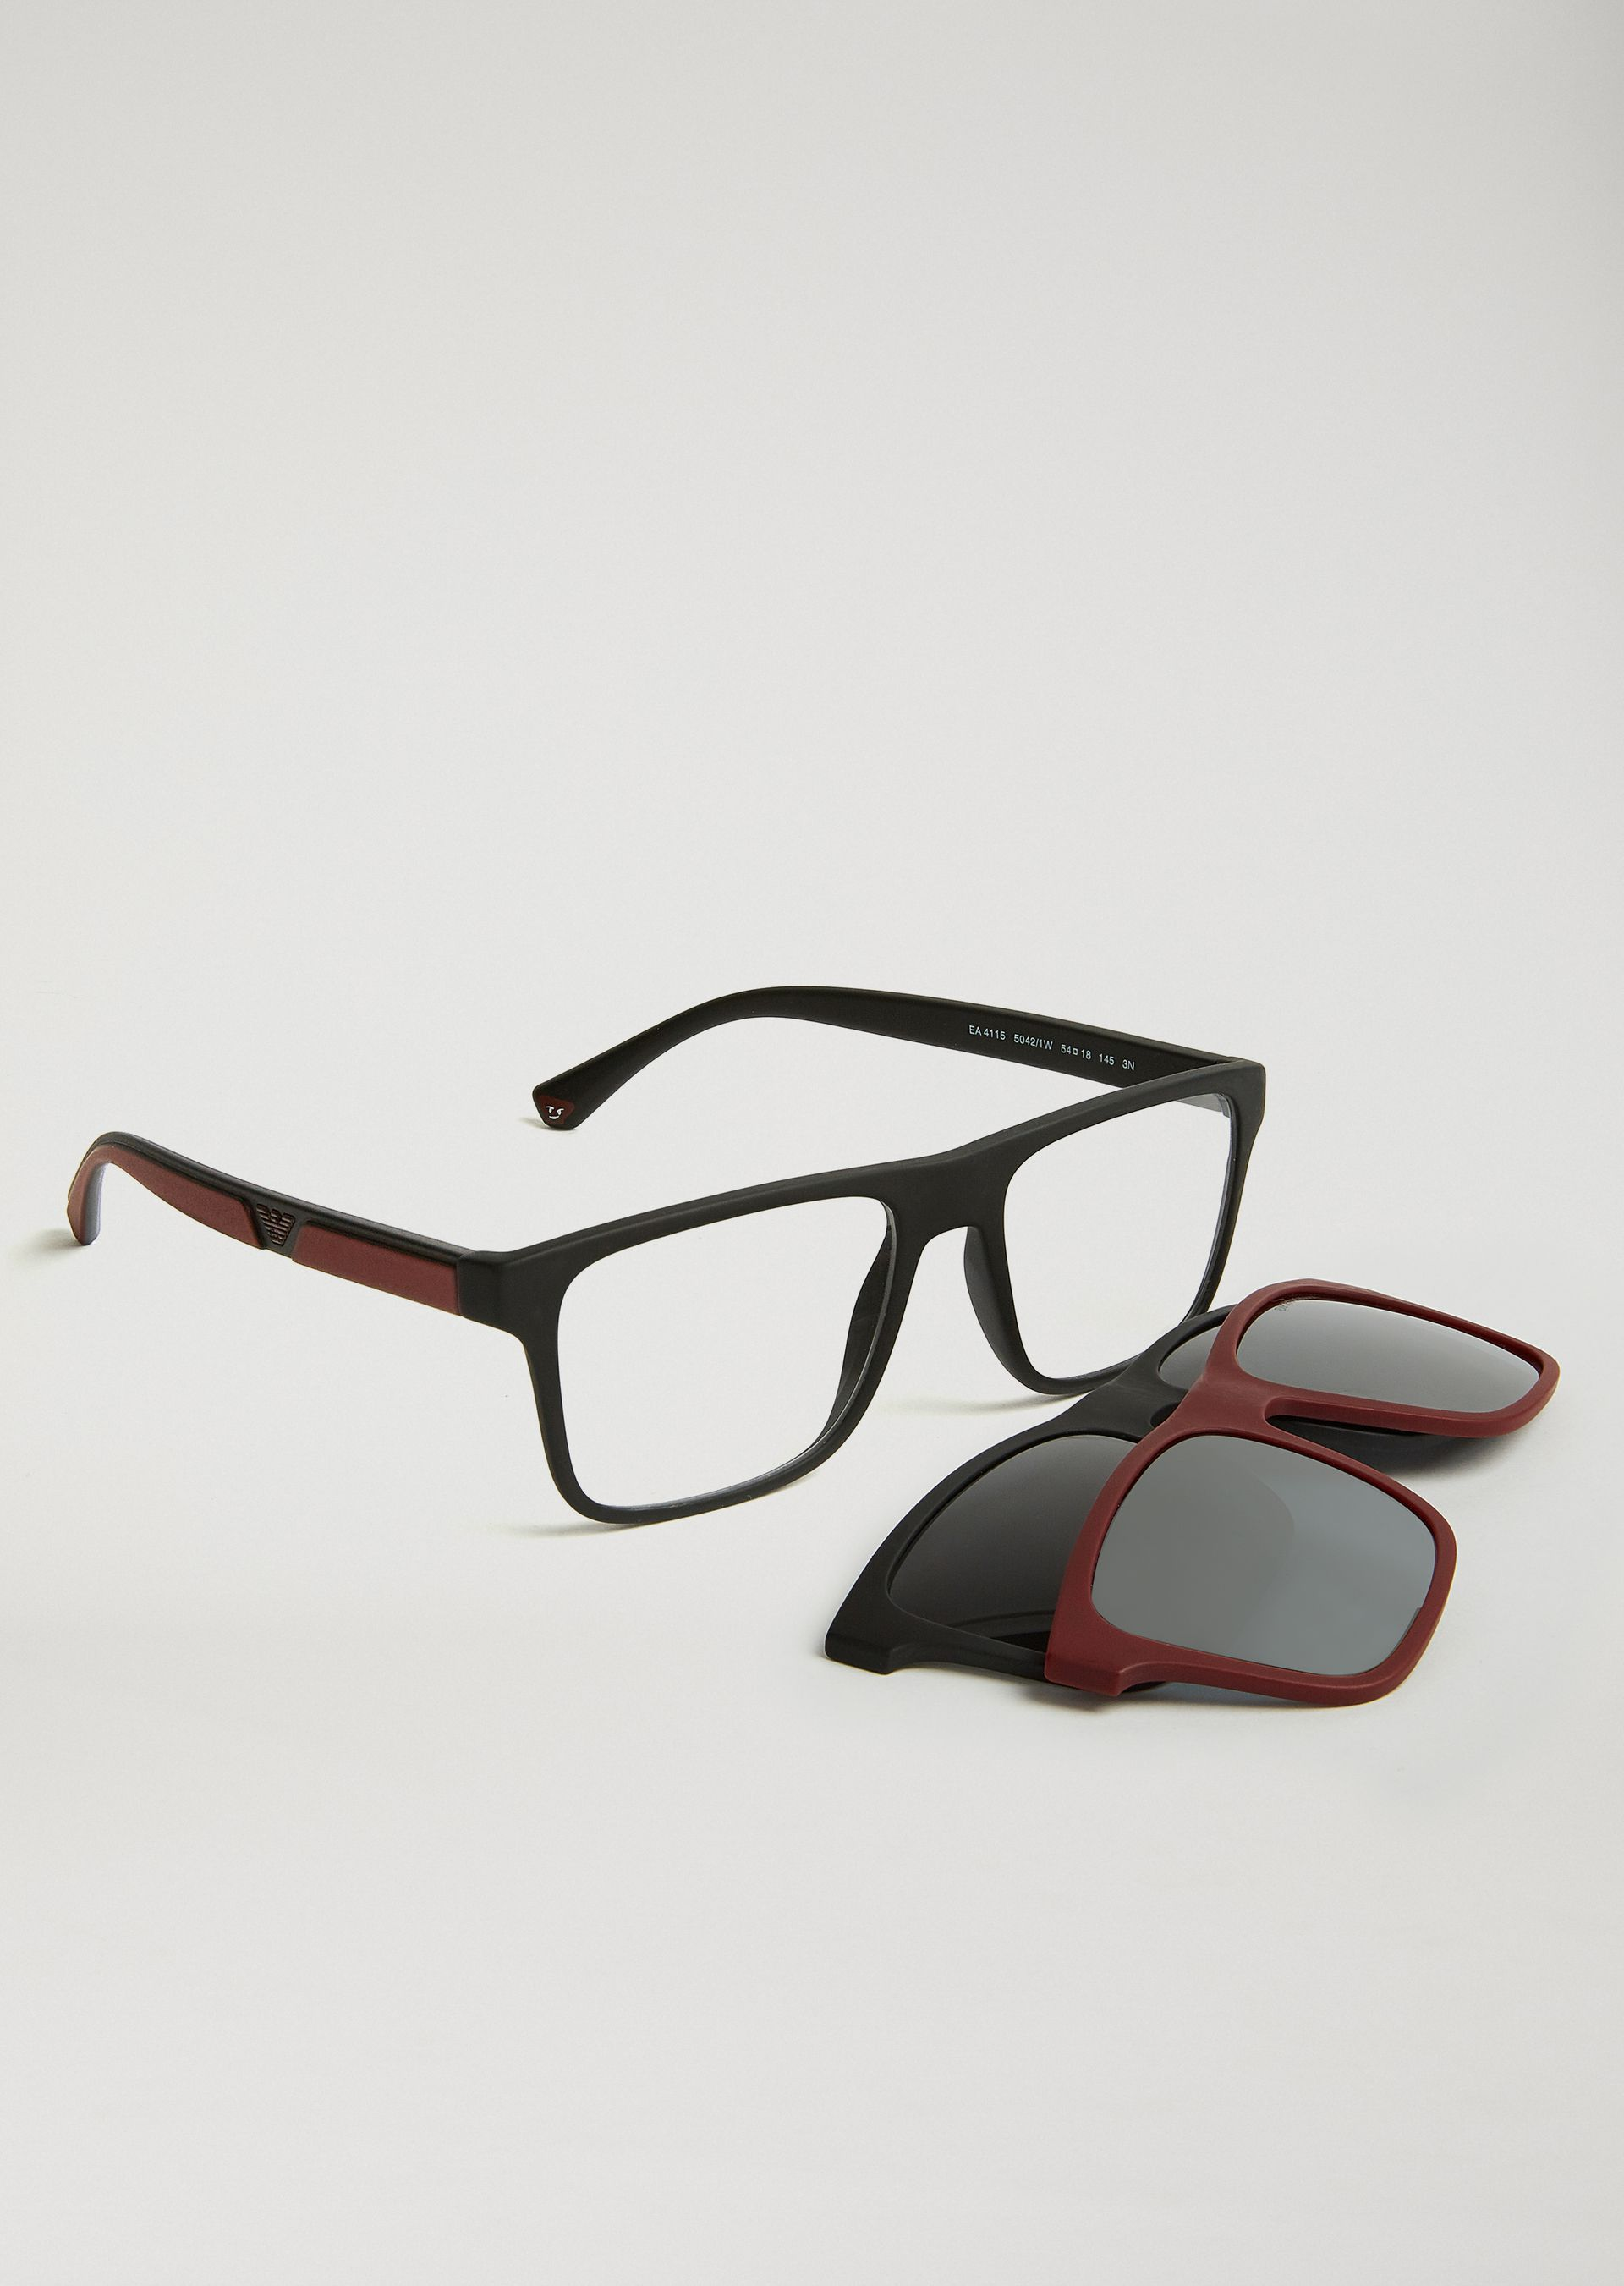 dbbfbf1999ae EMPORIO ARMANI Special Project Glasses With Interchangeable Lenses  Sunglasses Man r